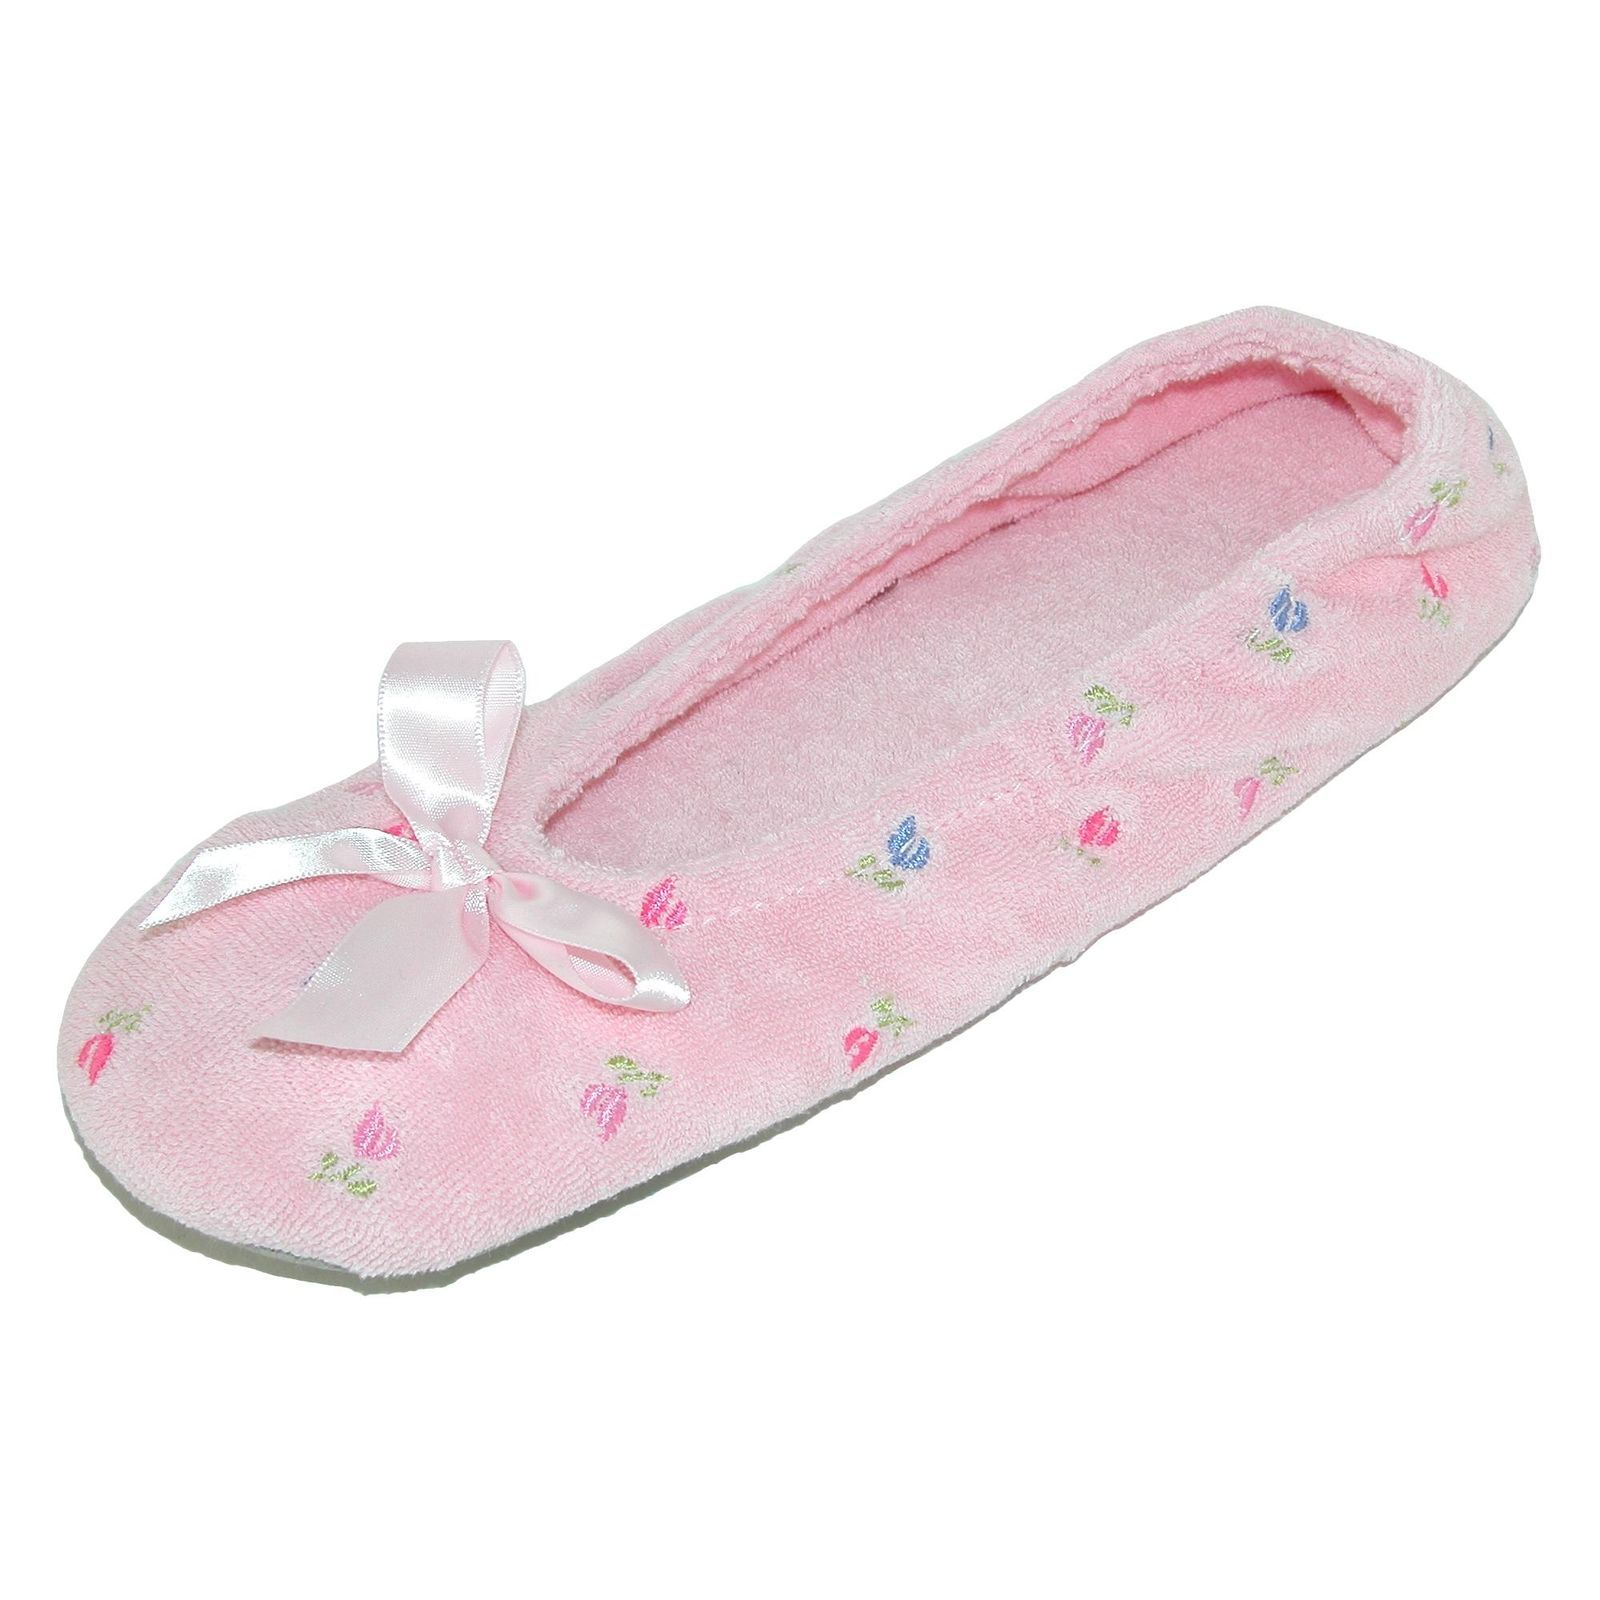 baa804dd45fd New Isotoner Women s Embroidered Terry Ballerina Slippers